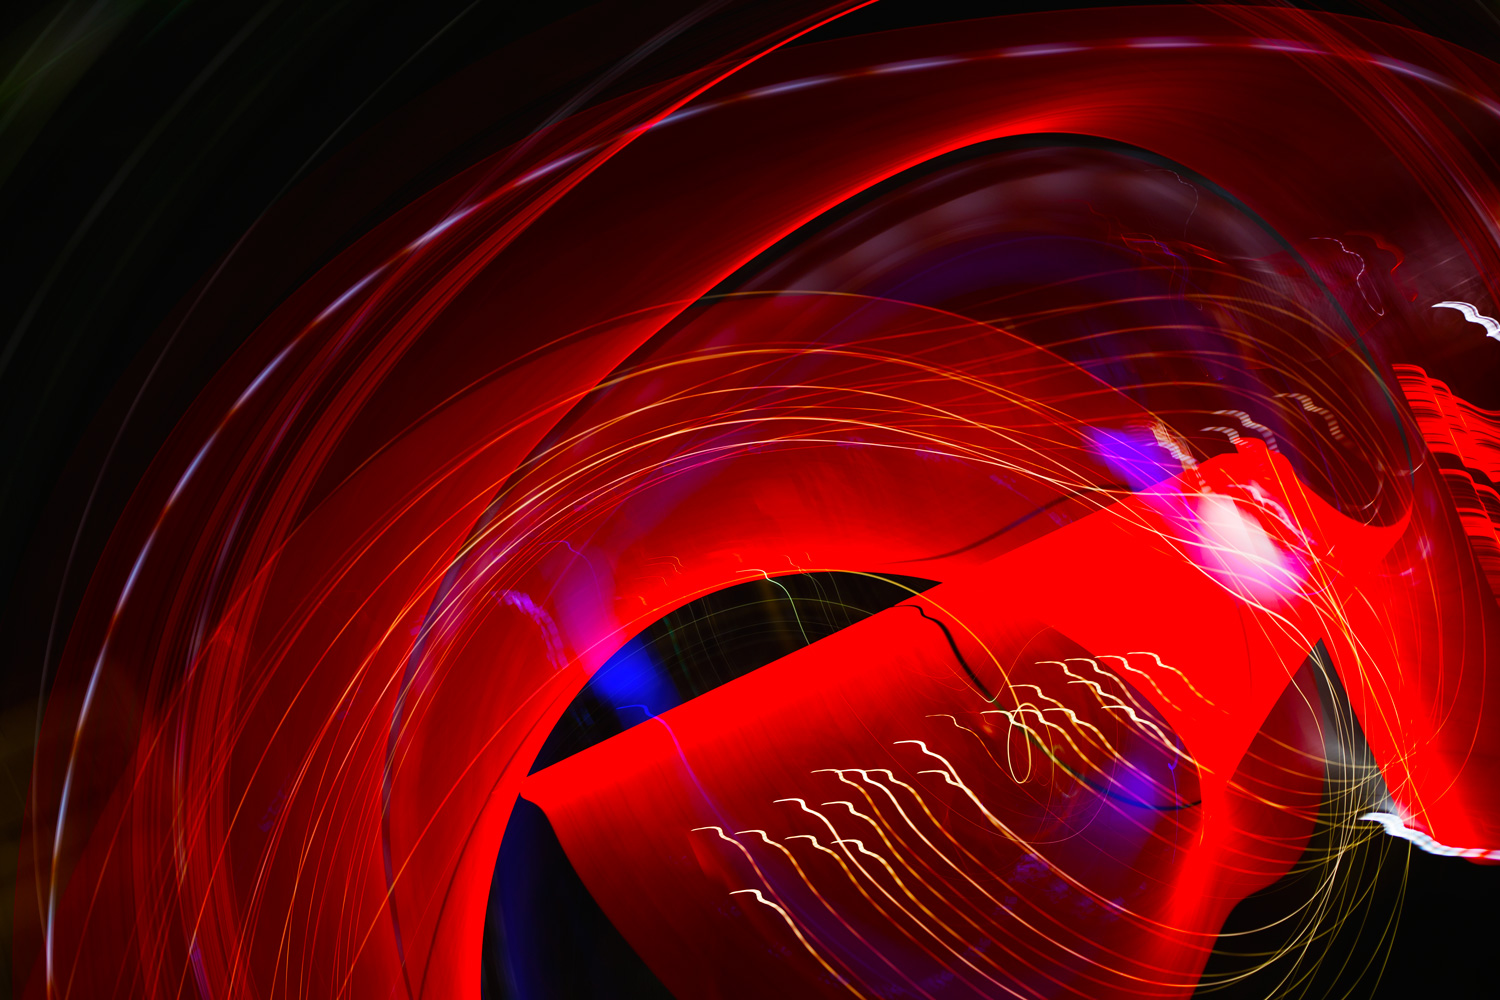 https://i2.wp.com/digital-photography-school.com/wp-content/uploads/2019/06/abstract_light_photography_toss_red.jpg?resize=1500%2C1000&ssl=1